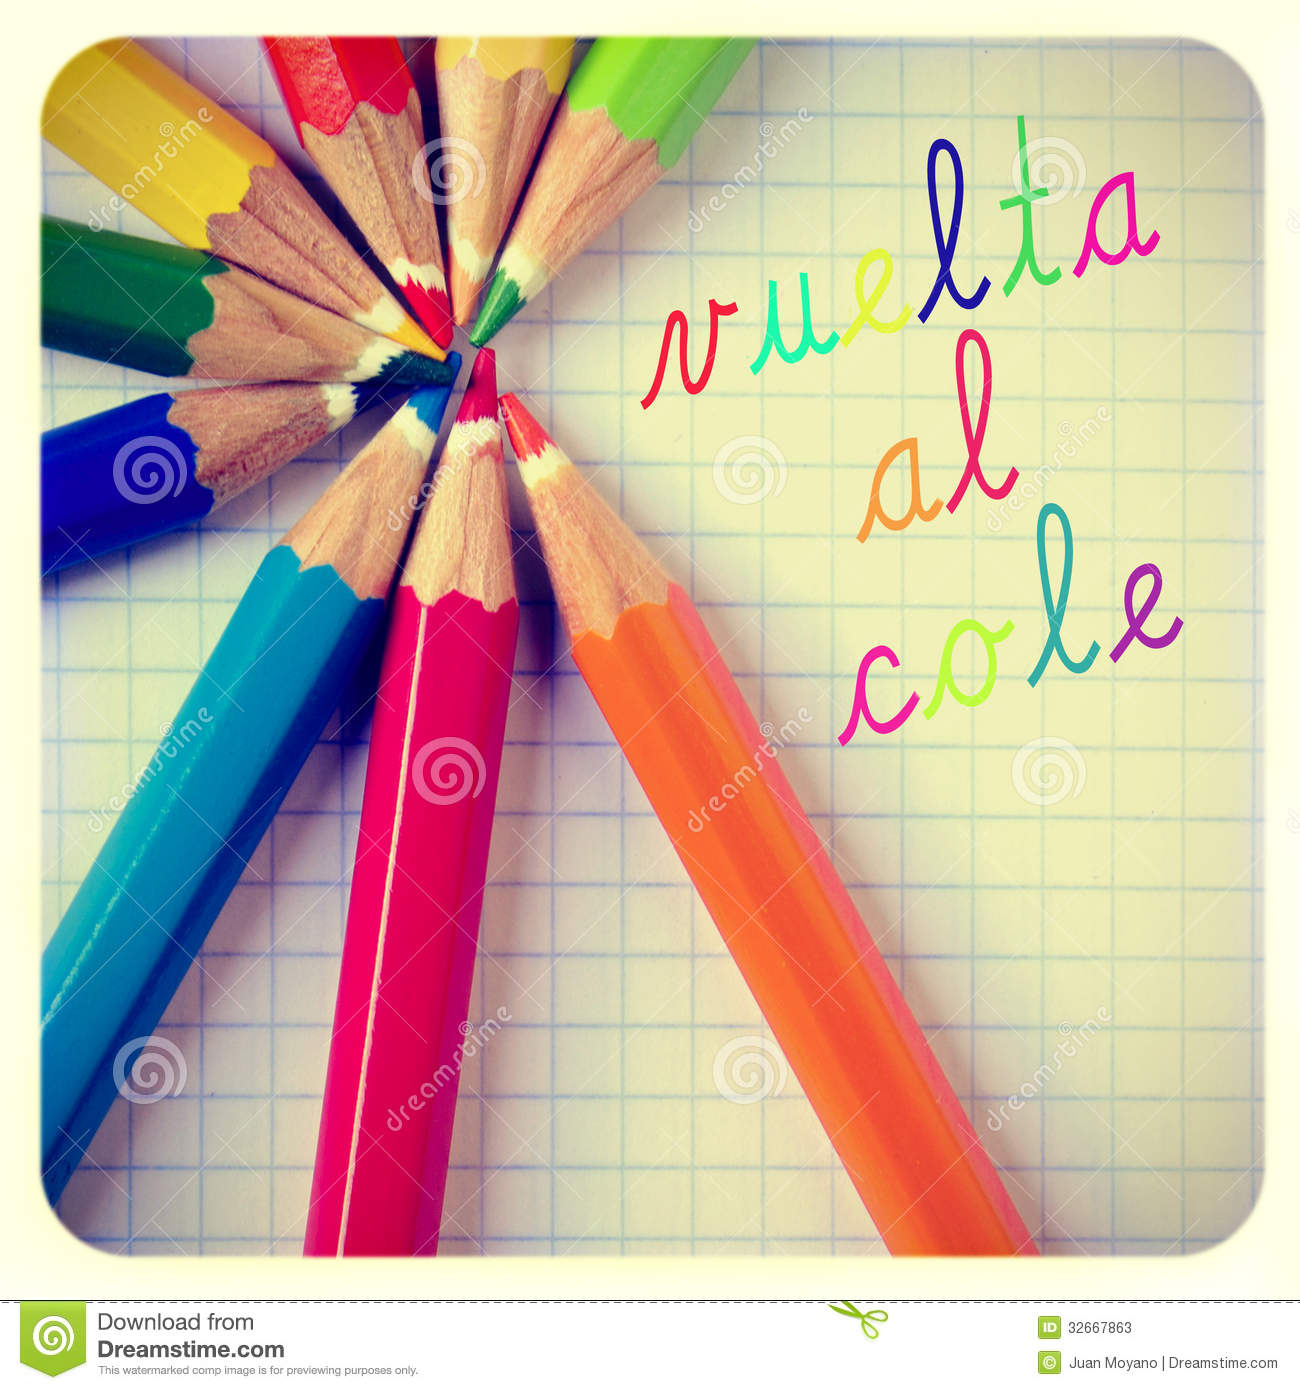 Vuelta Al Cole Back To School Written In Spanish Stock